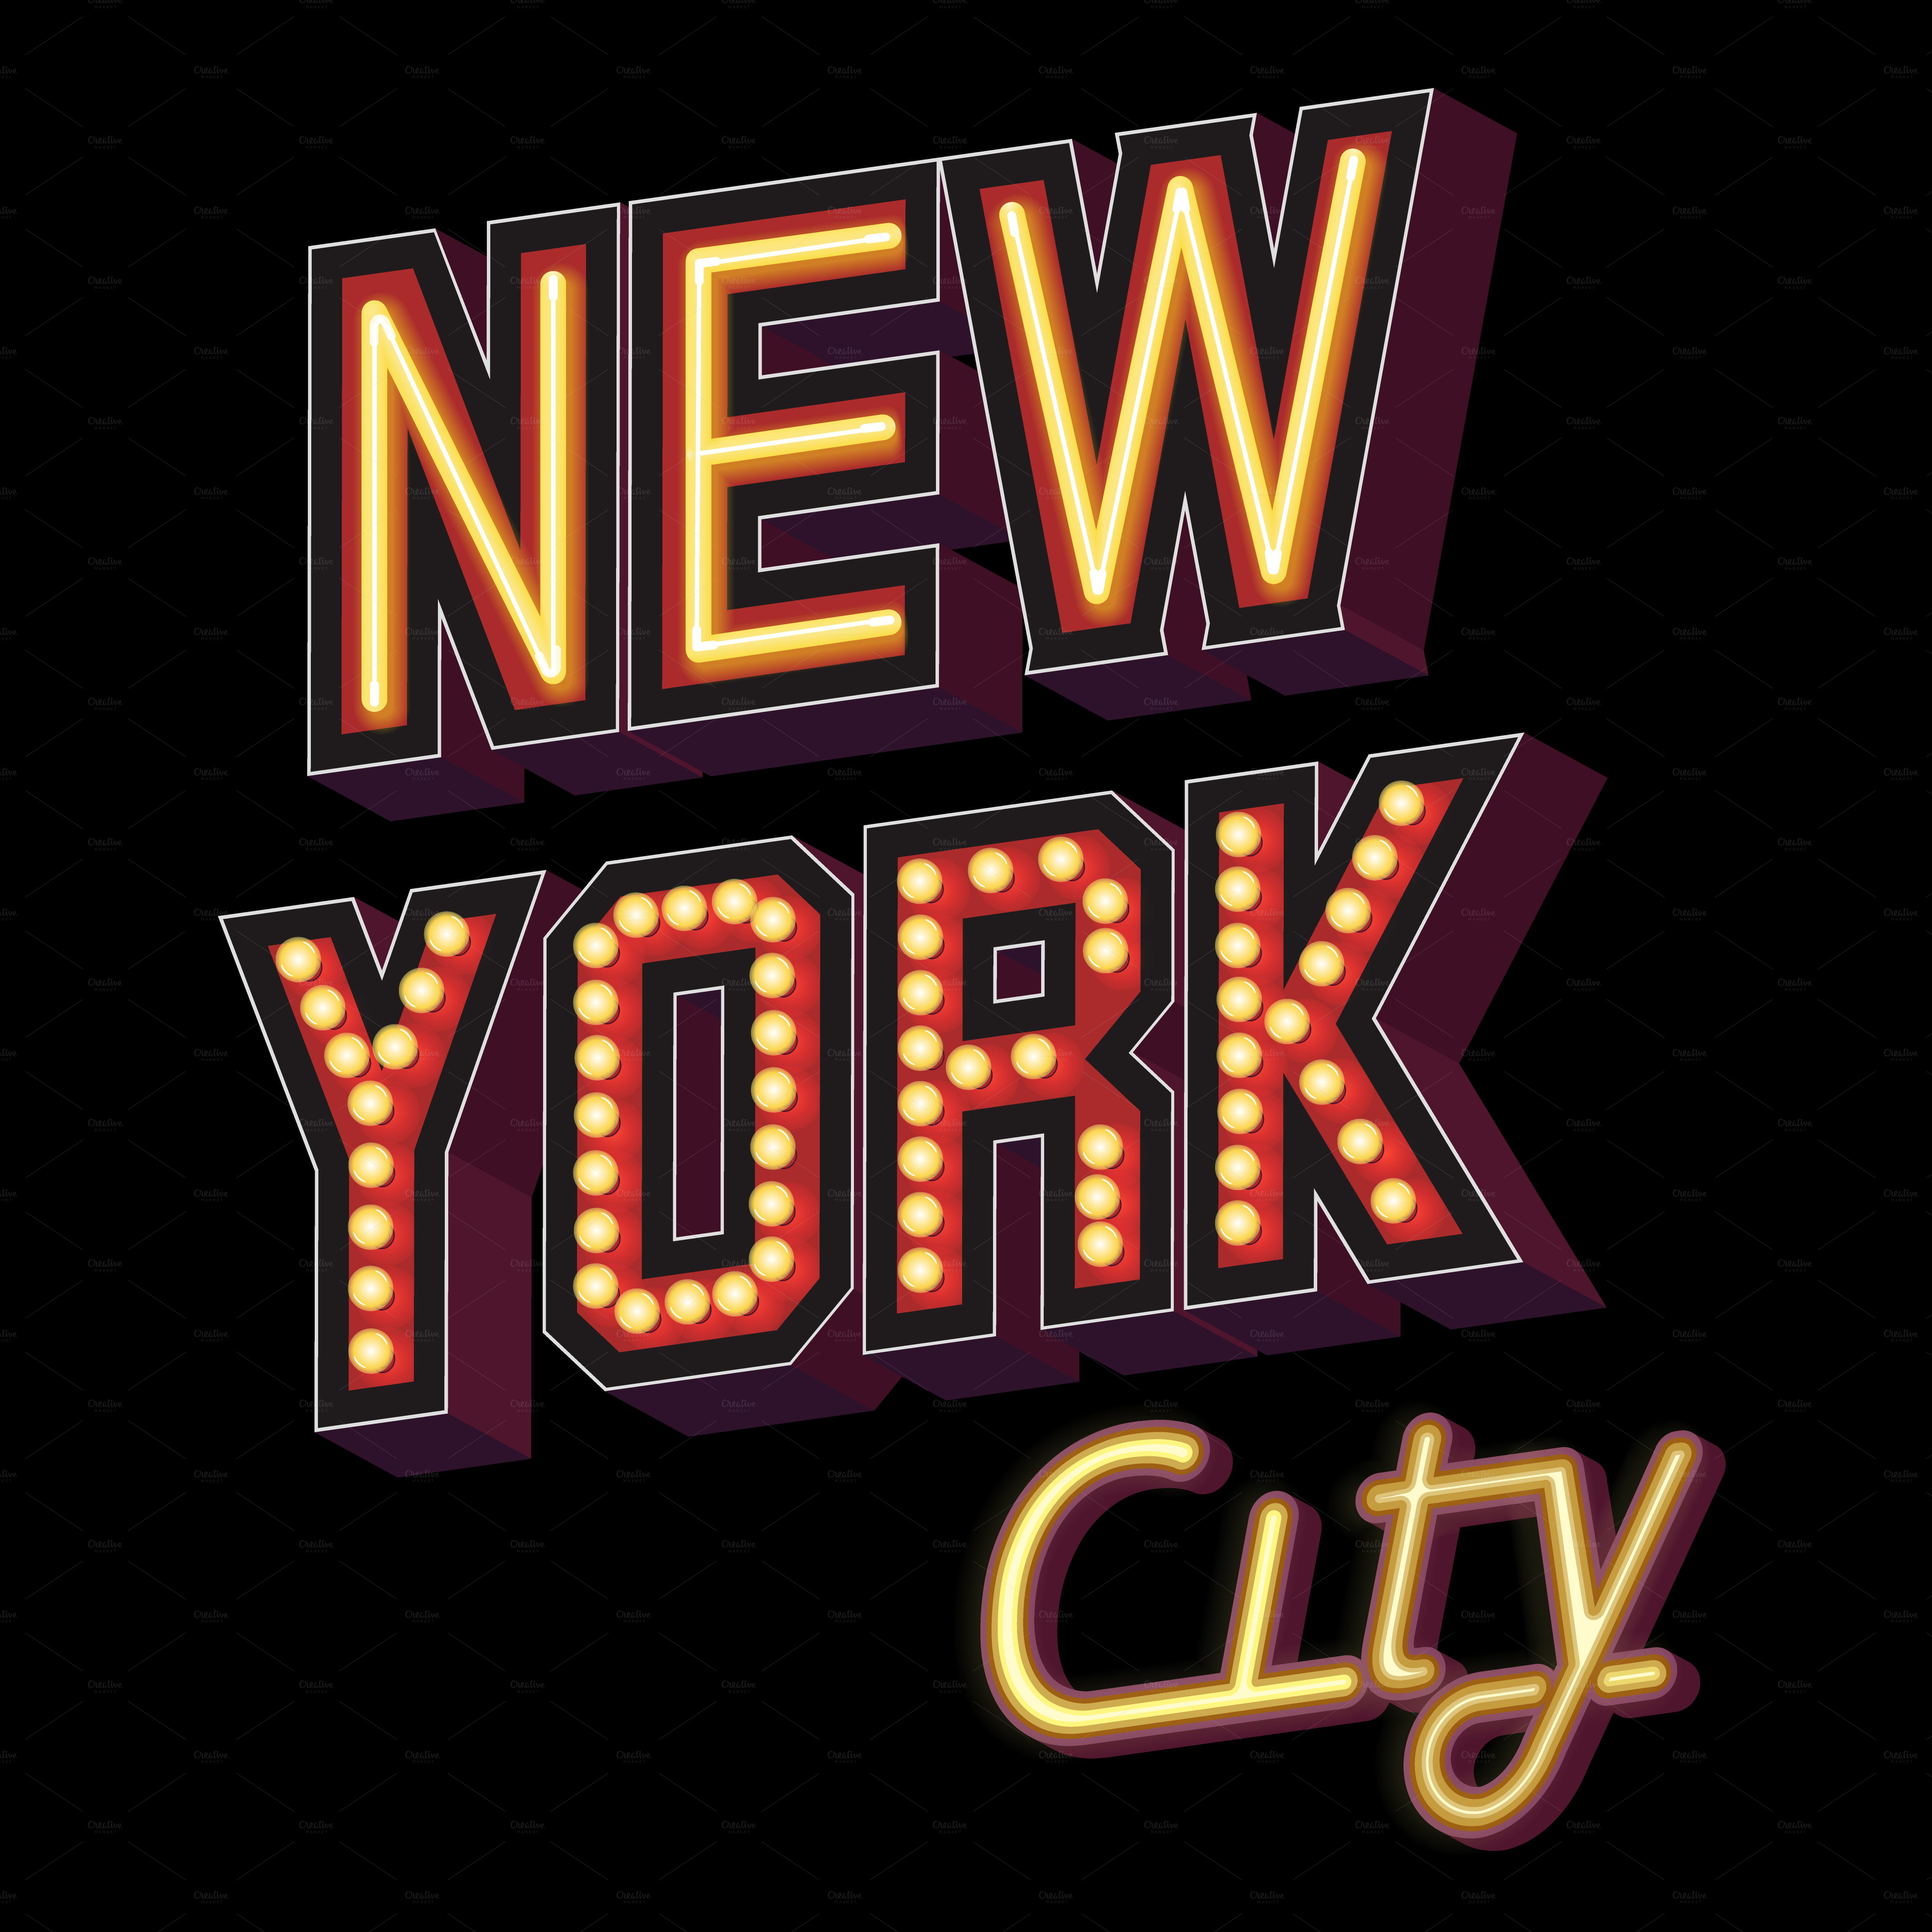 New York City Lettering Illustrations On Creative Market